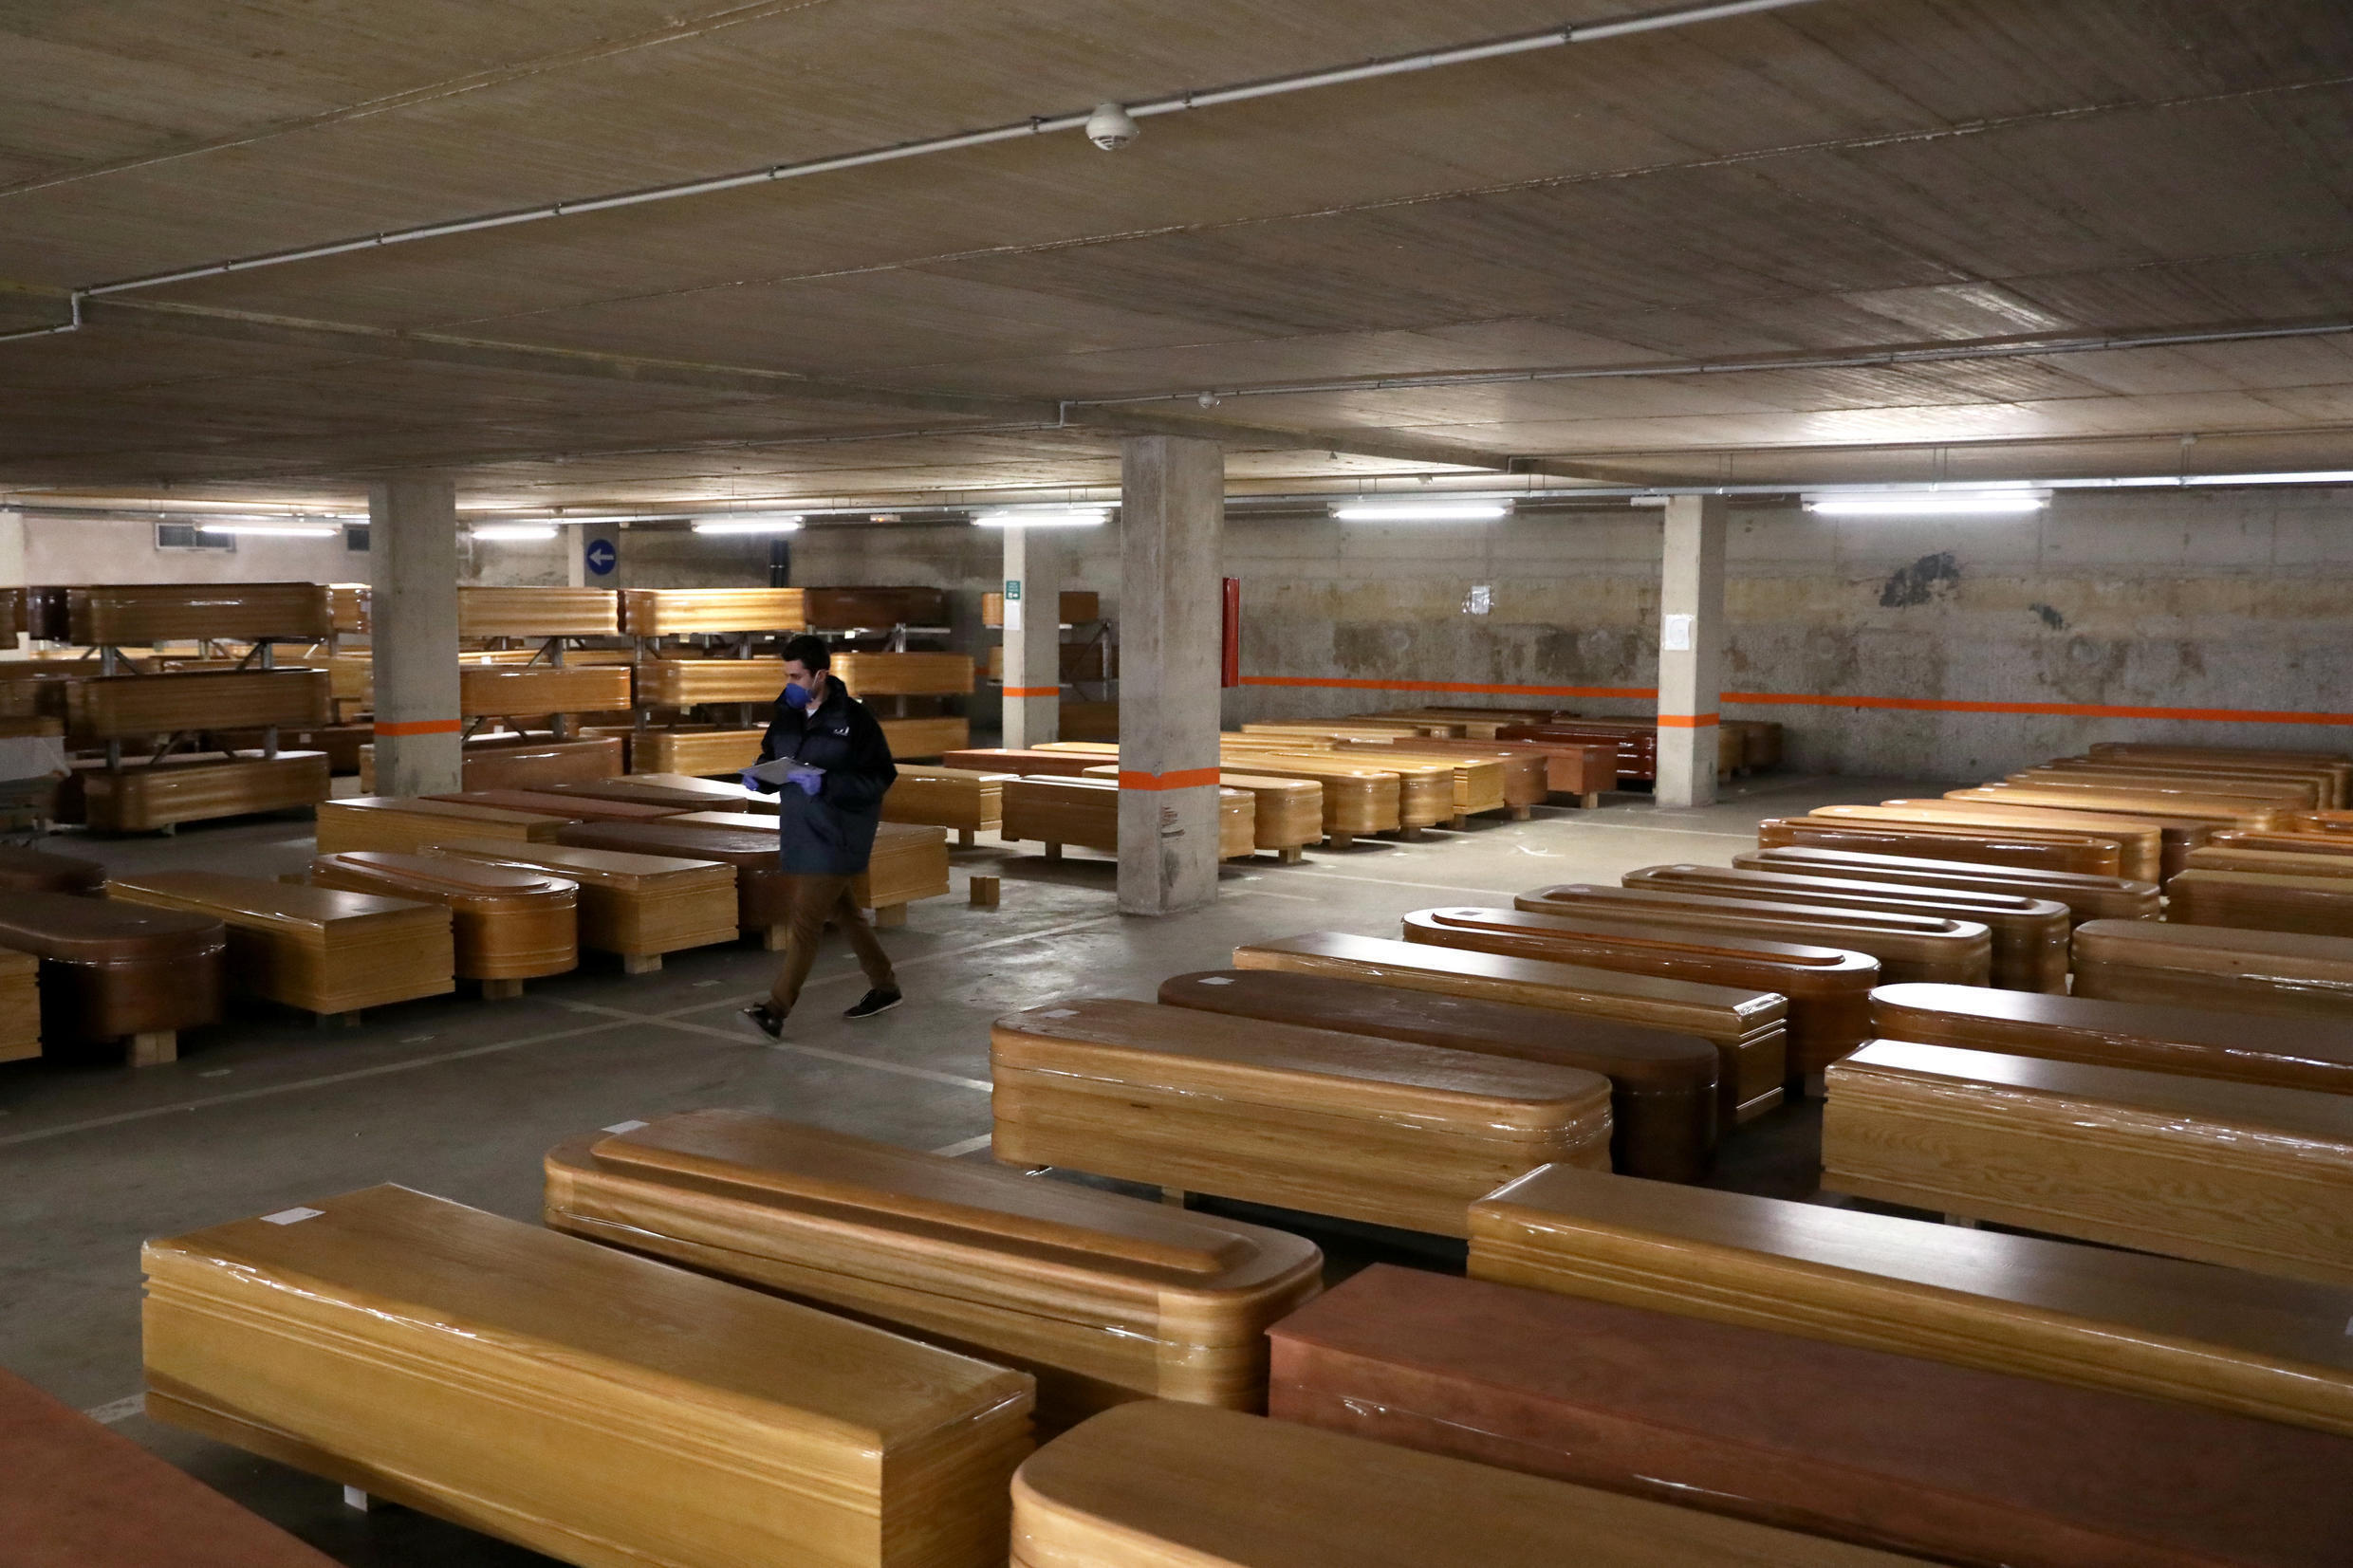 A worker walks past coffins, most of them containing the bodies of COVID-19 victims, in the parking of a funeral parlour in Barcelona, Spain April 2, 2020.